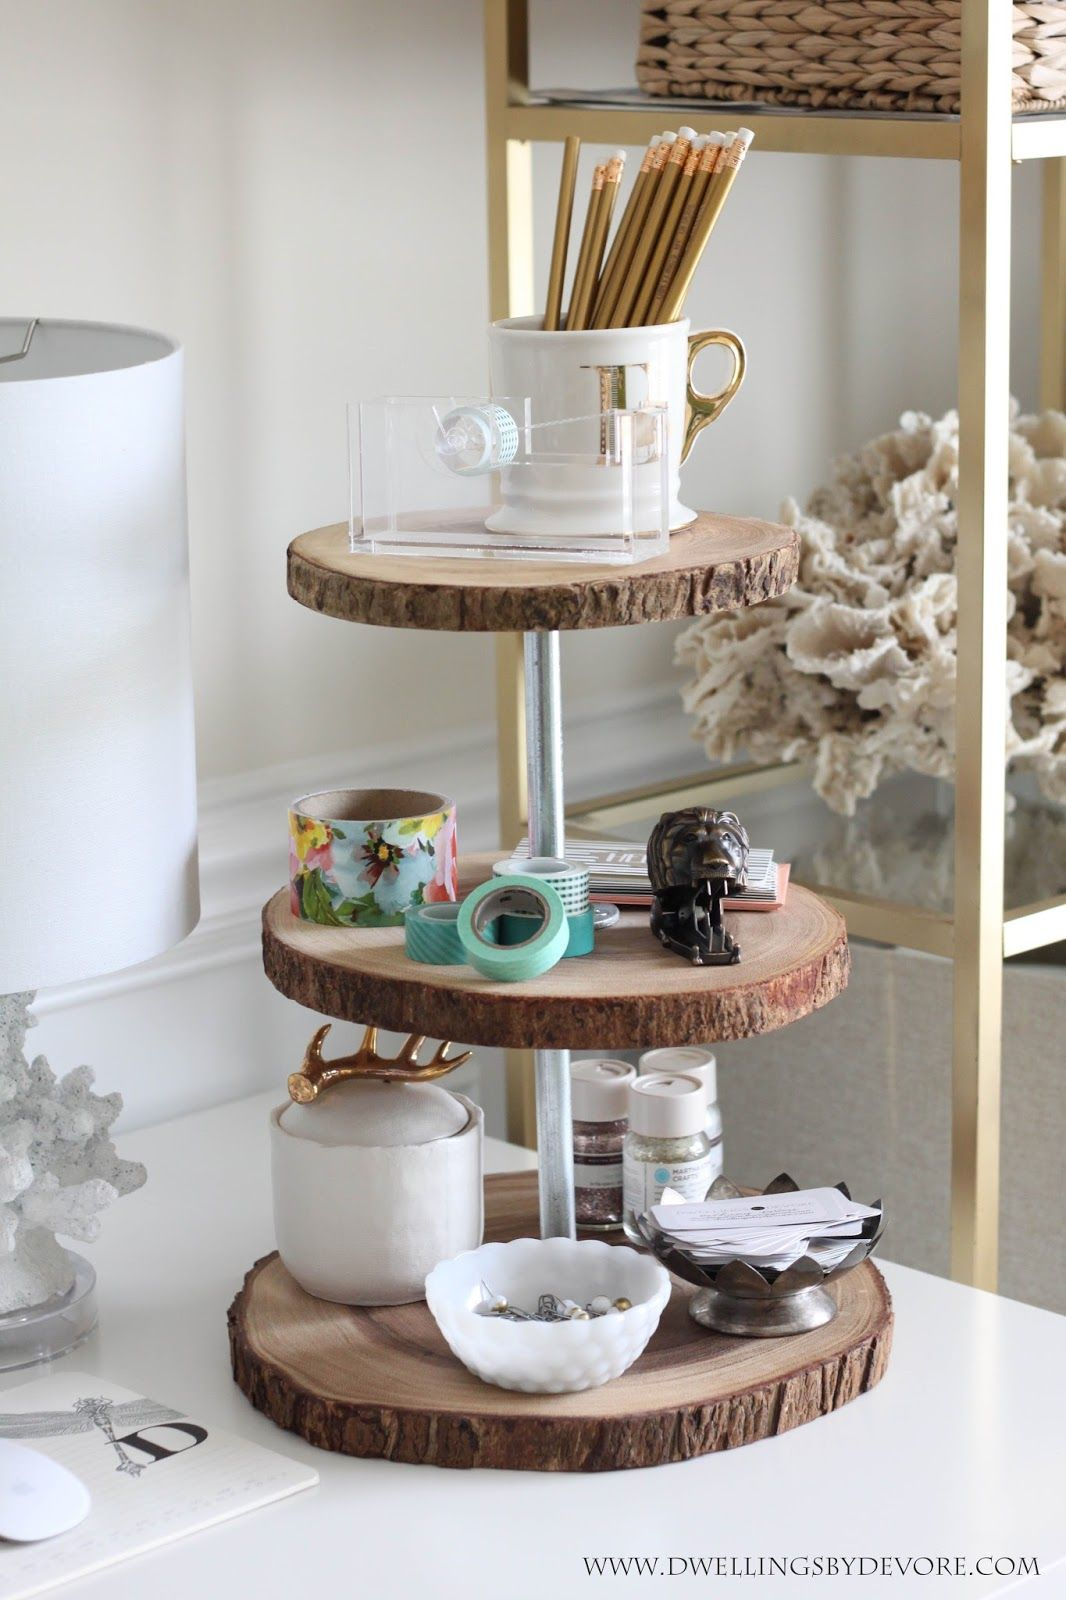 Tiered Serving Tray 3 Ways Tiered Serving Trays Wood Decor Home Decor Hacks